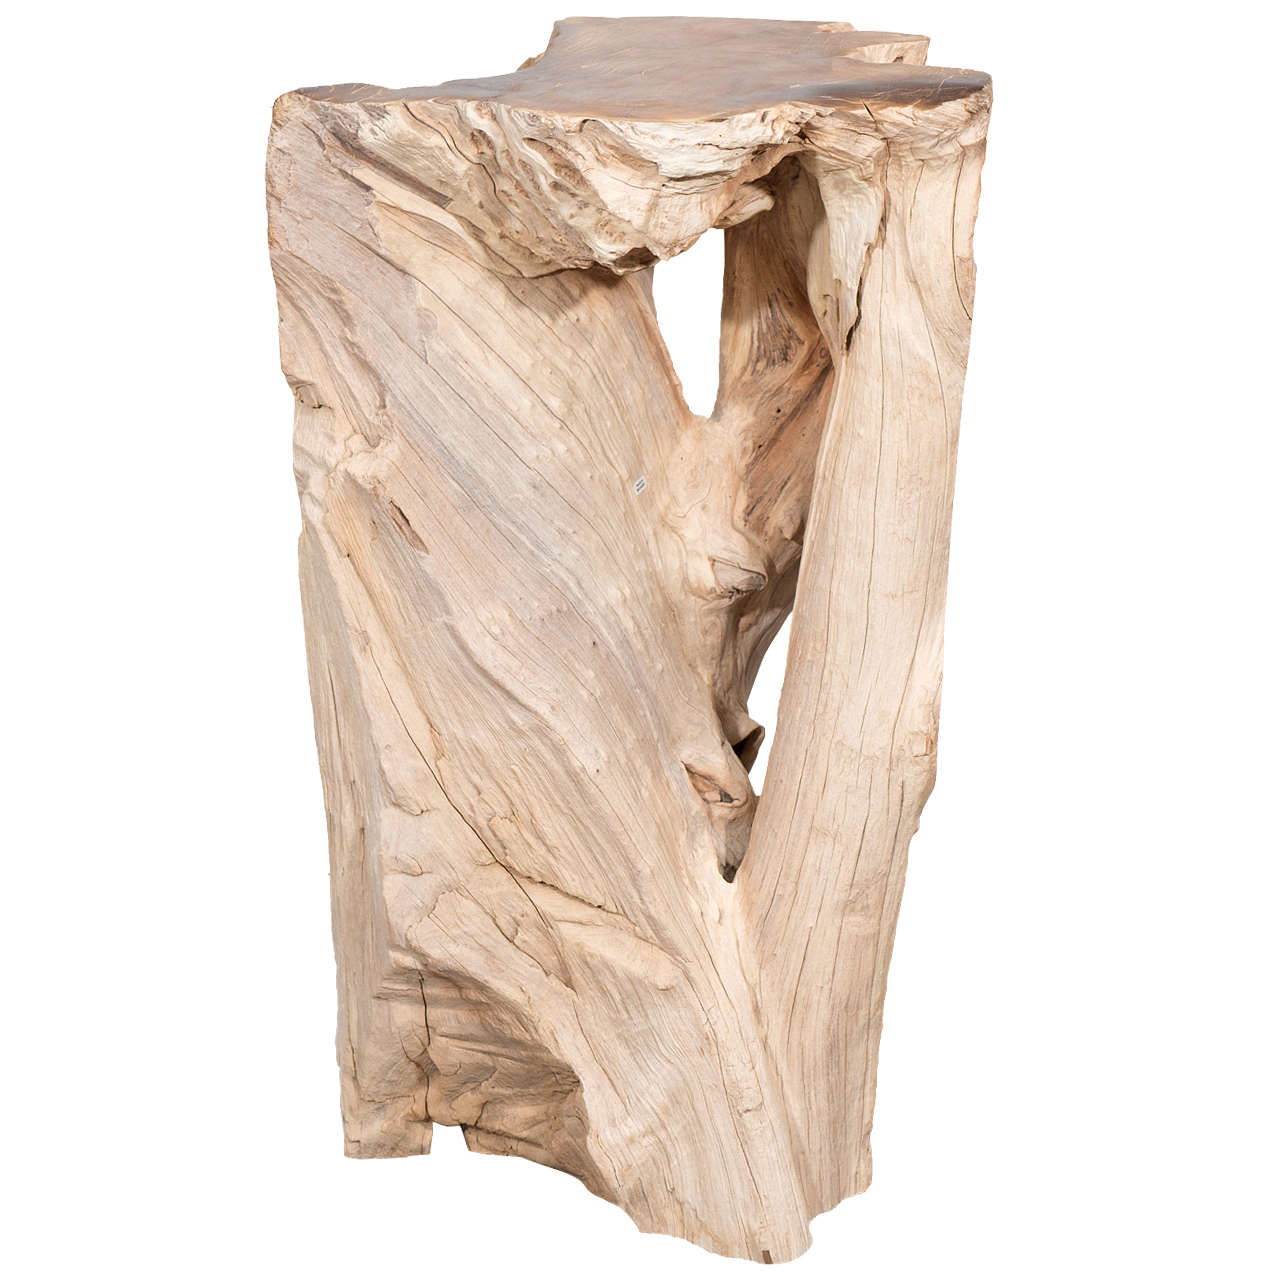 Organic Reclaimed Teak Wood Table Base Or Pedestal 1